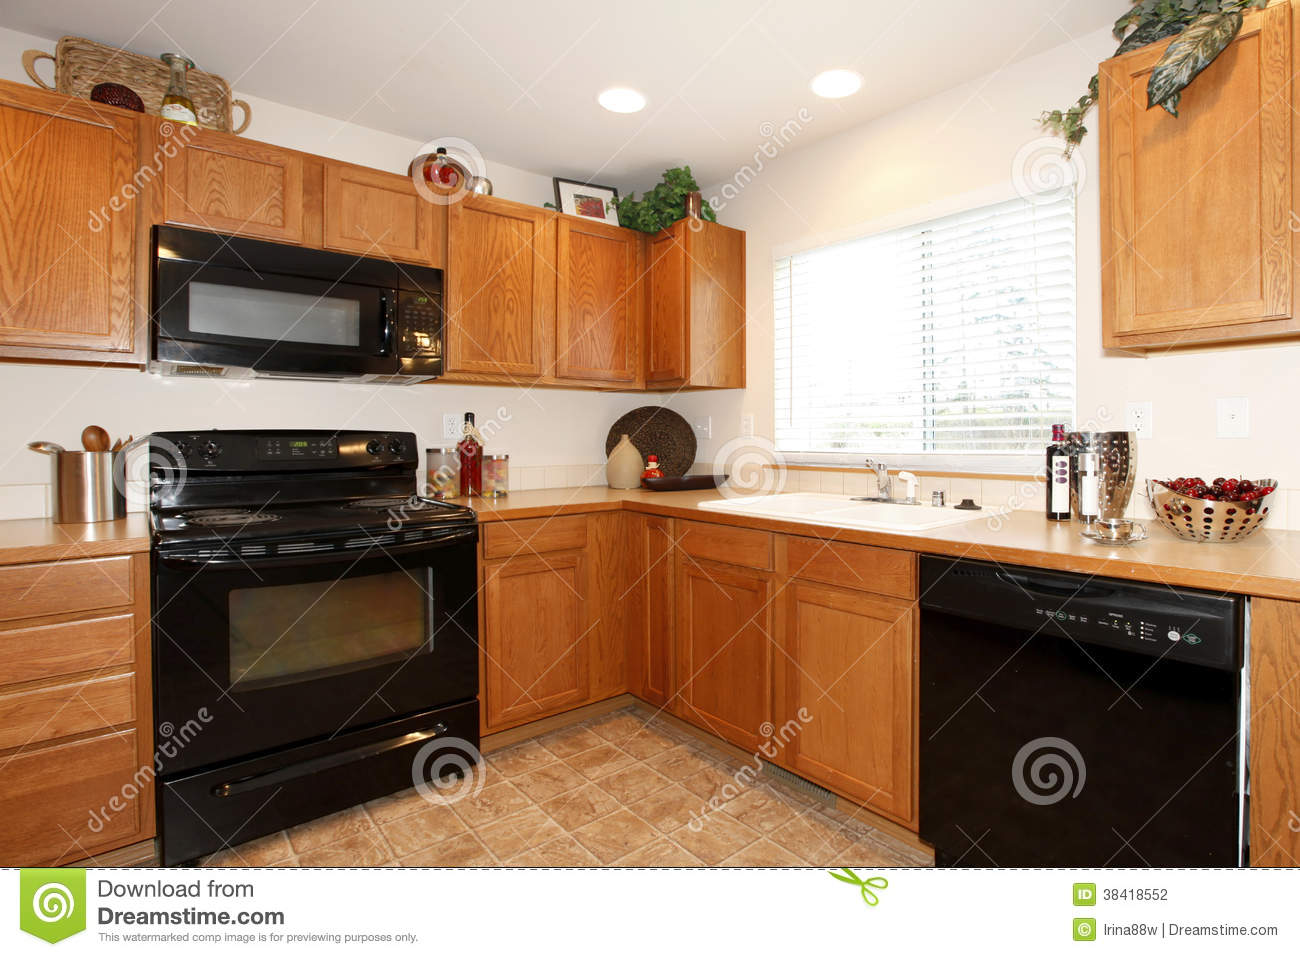 Brown Kitchen Cabinets With Black Appliances Stock graphy Image